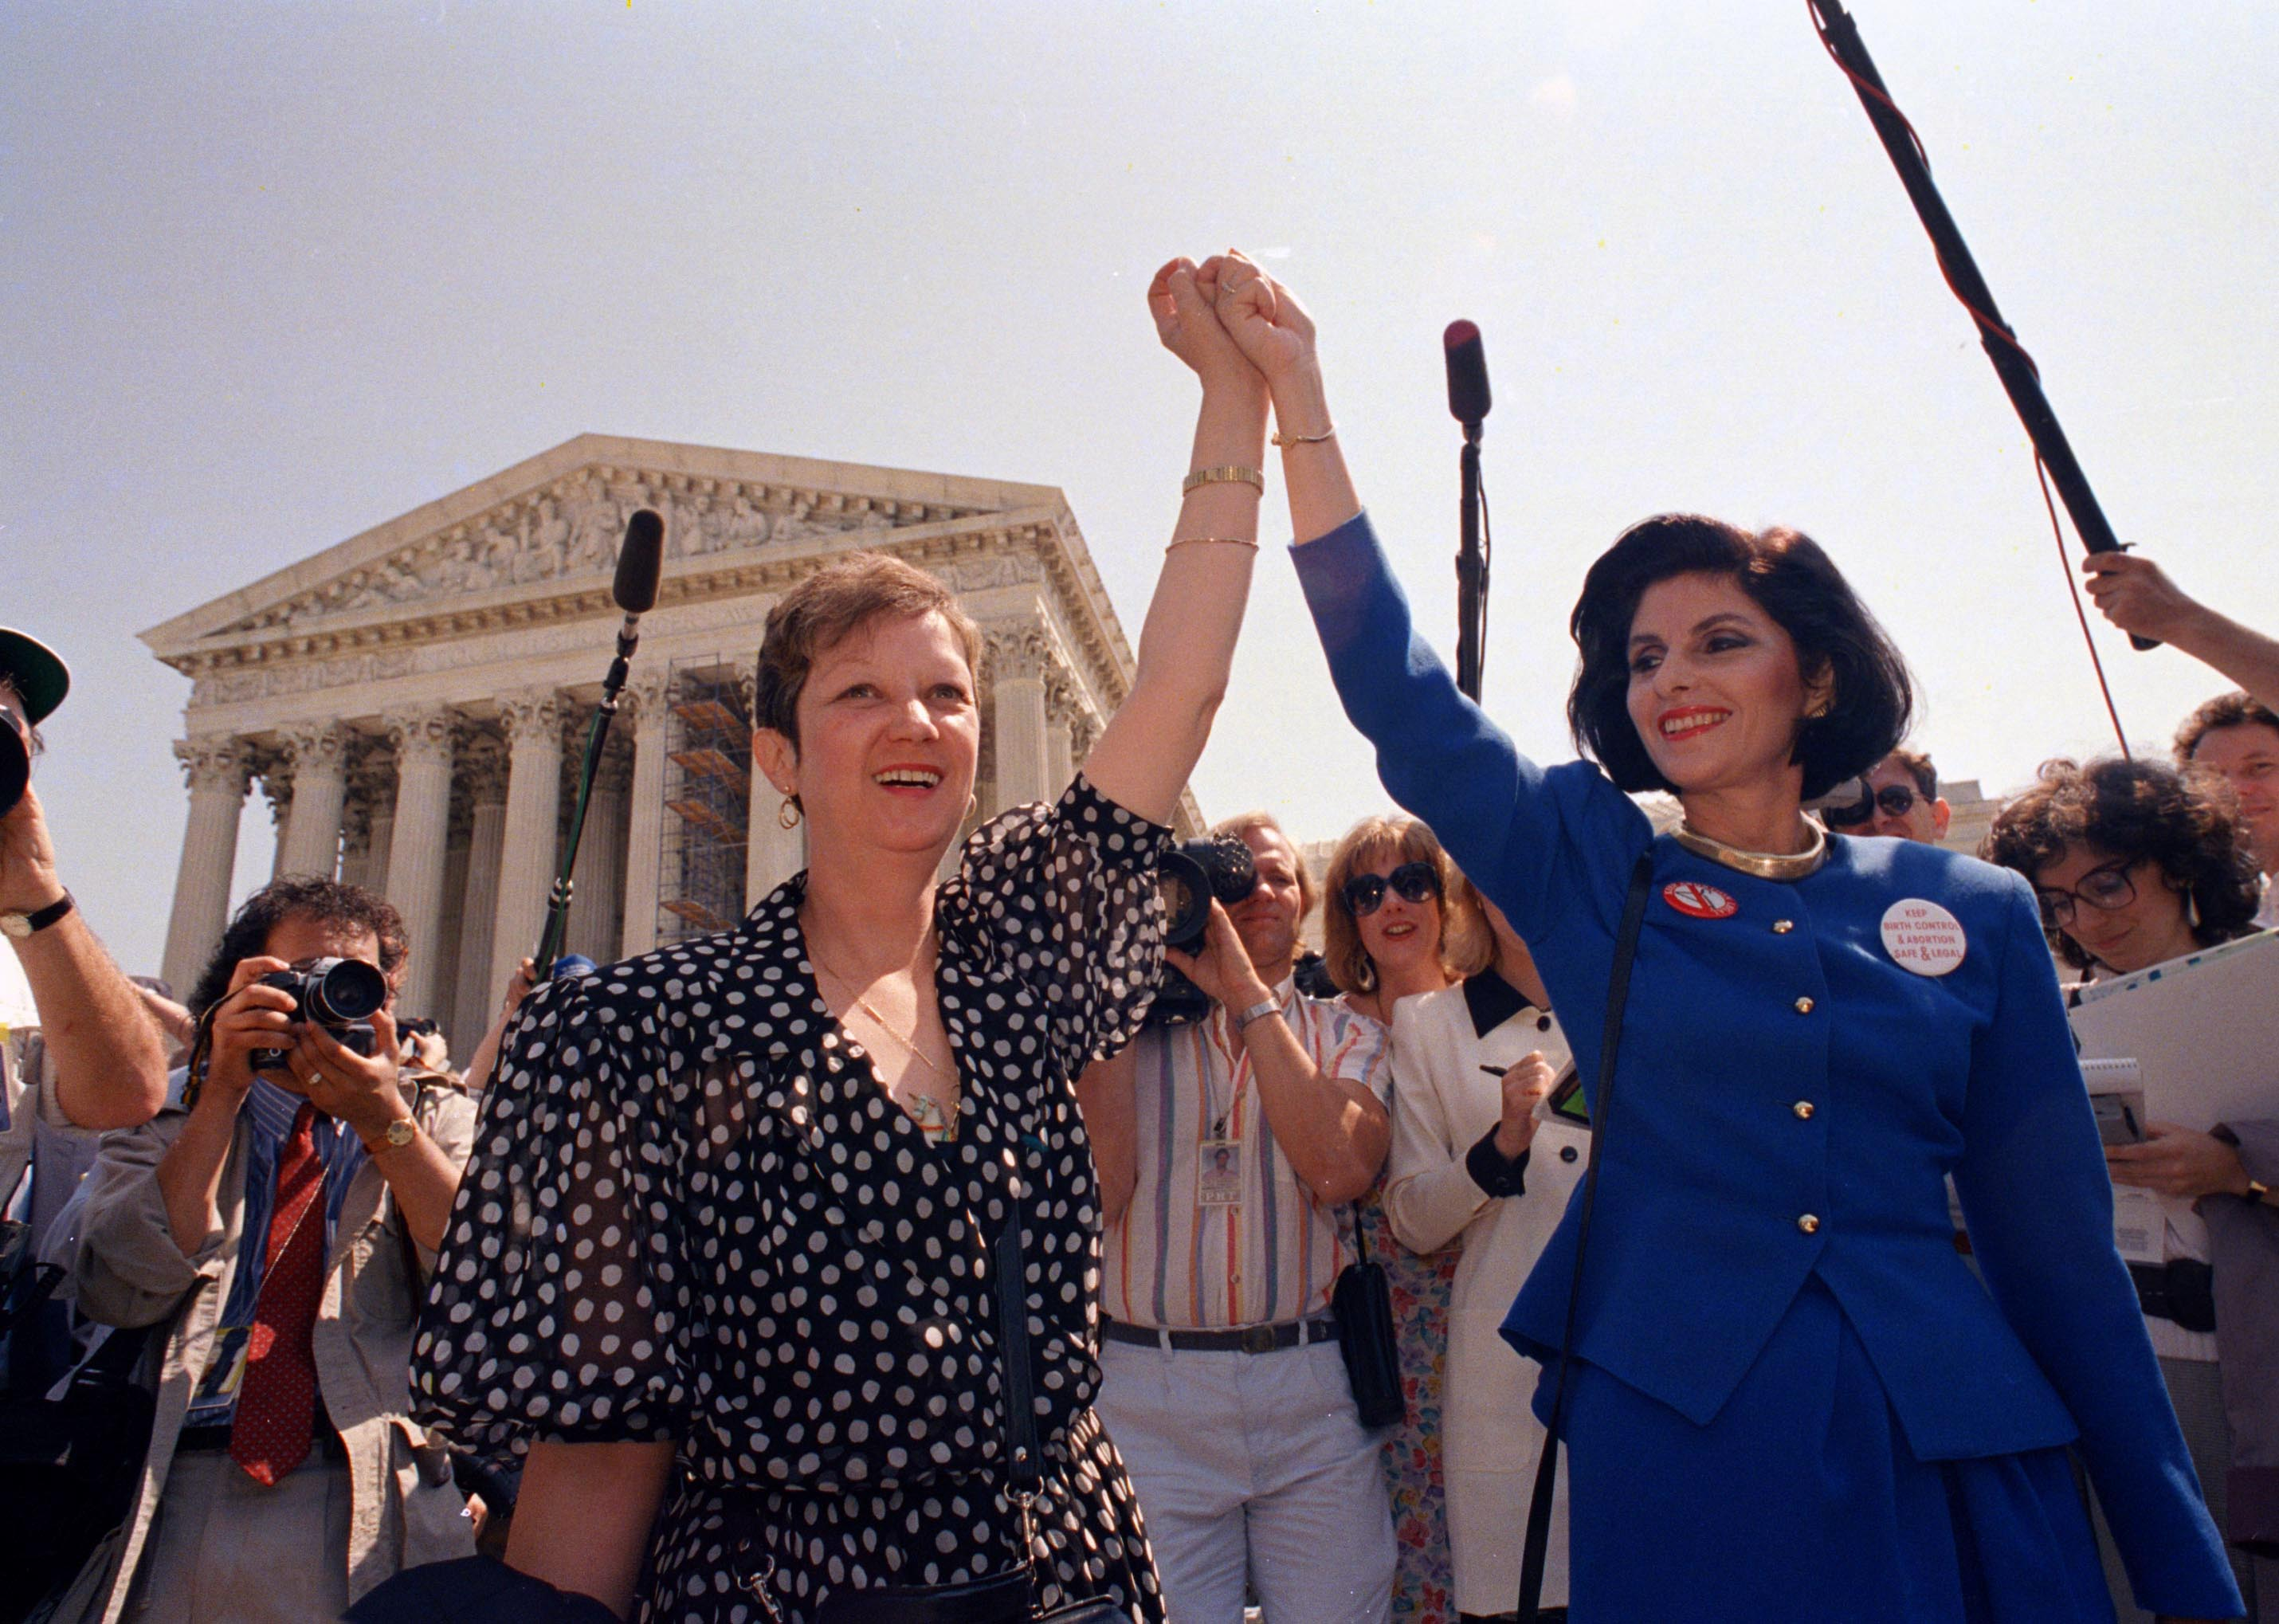 Norma McCorvey, Jane Roe in the 1973 court case, left, and her attorney Gloria Allred hold hands as they leave the Supreme Court building in Washington, DC., on April 26, 1989.